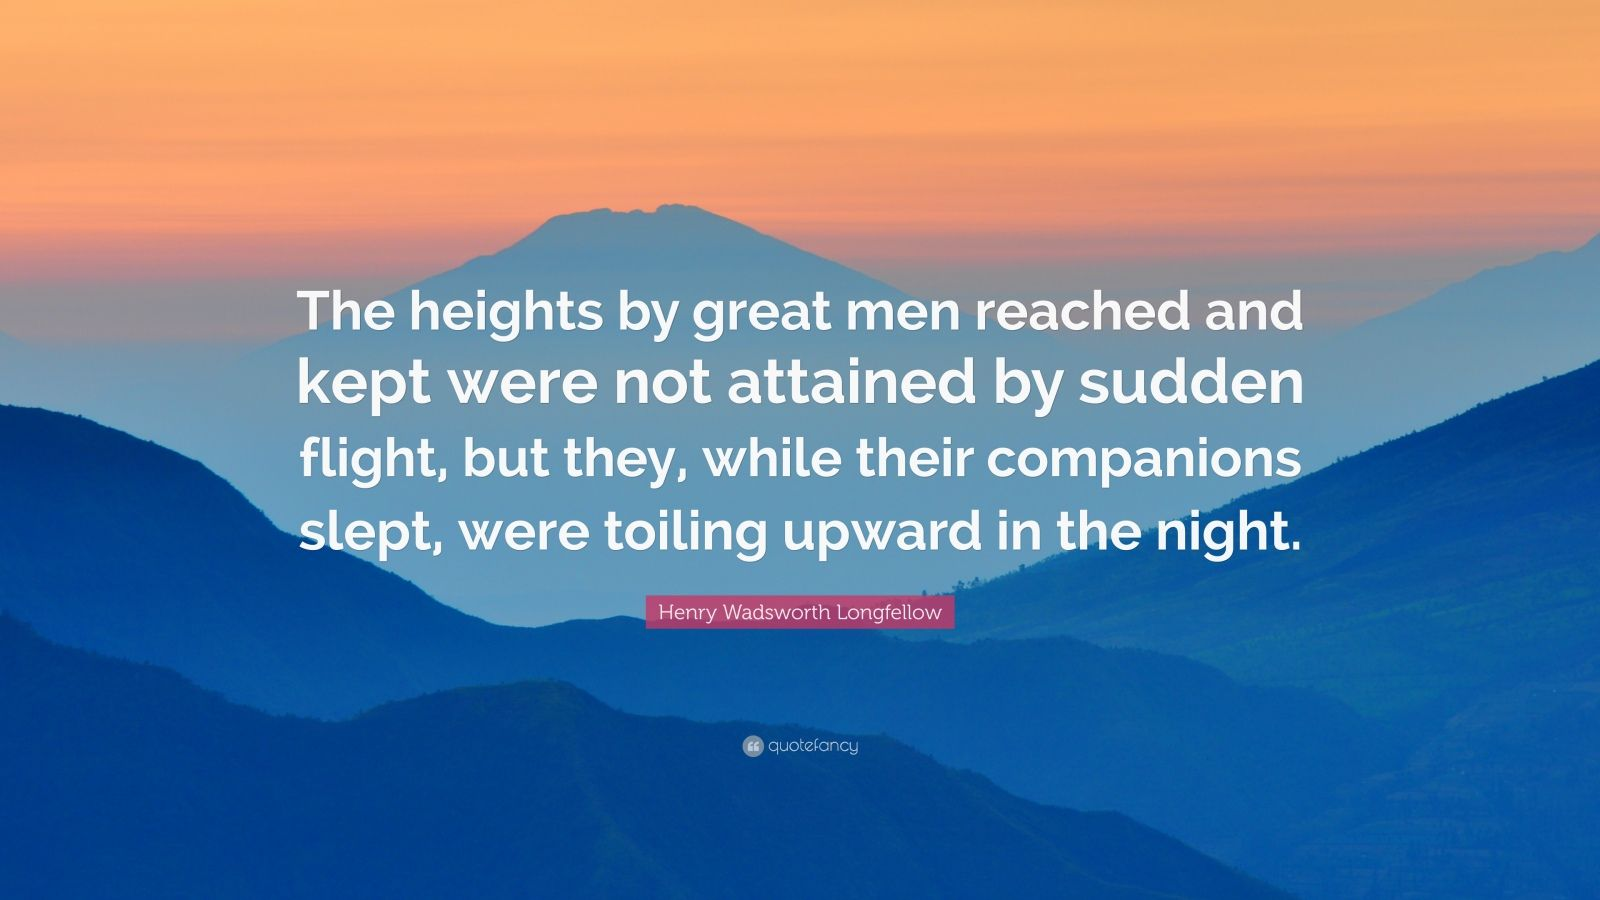 """Henry Wadsworth Longfellow Quote: """"The heights by great men reached and kept were not attained by sudden flight, but they, while their companions slept, were toiling upward in the night."""""""